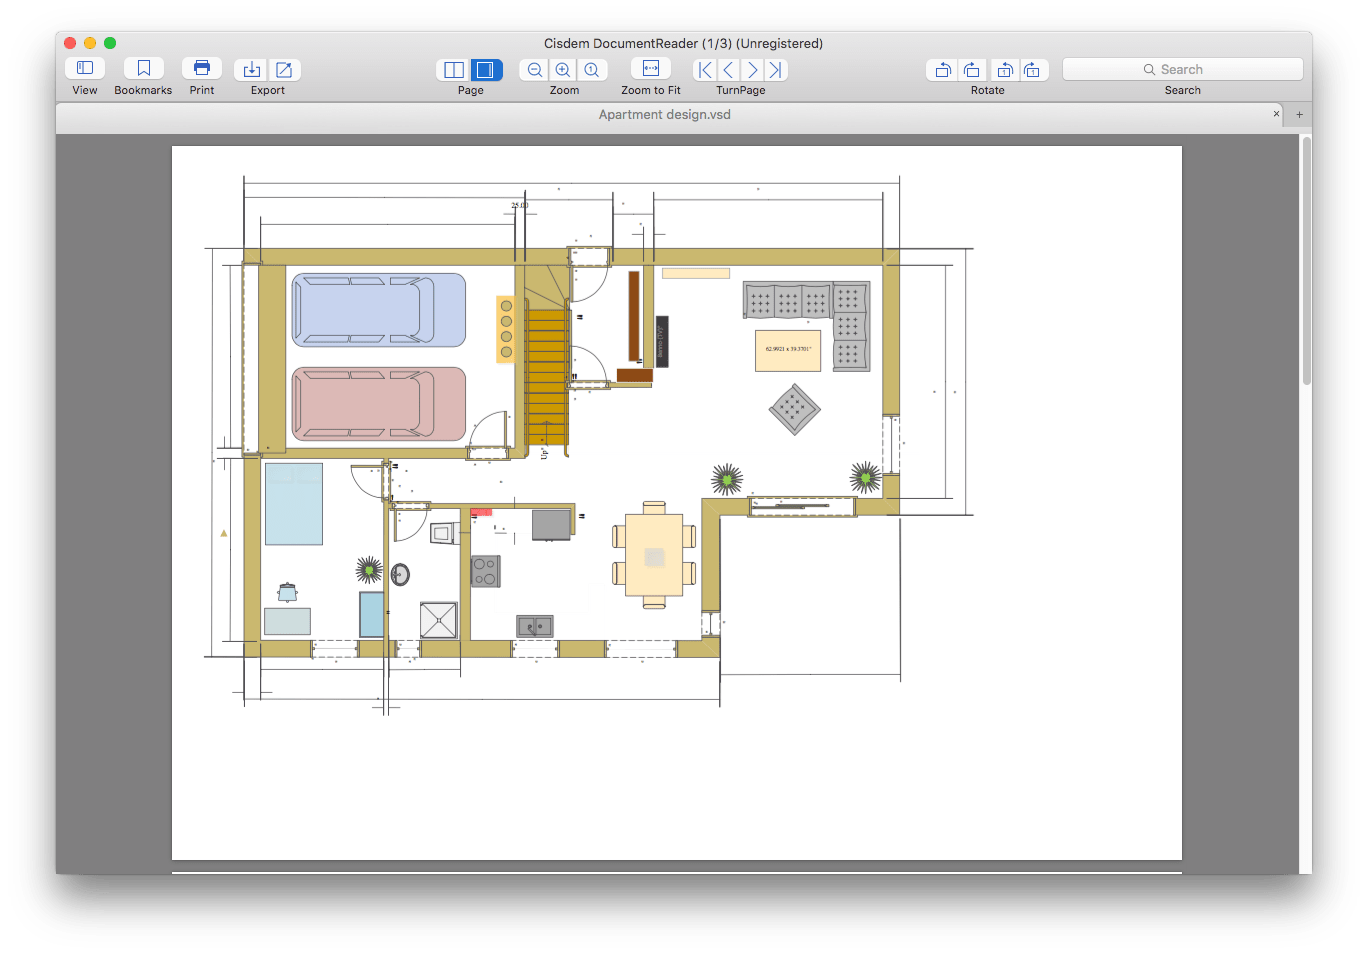 visio reader mac